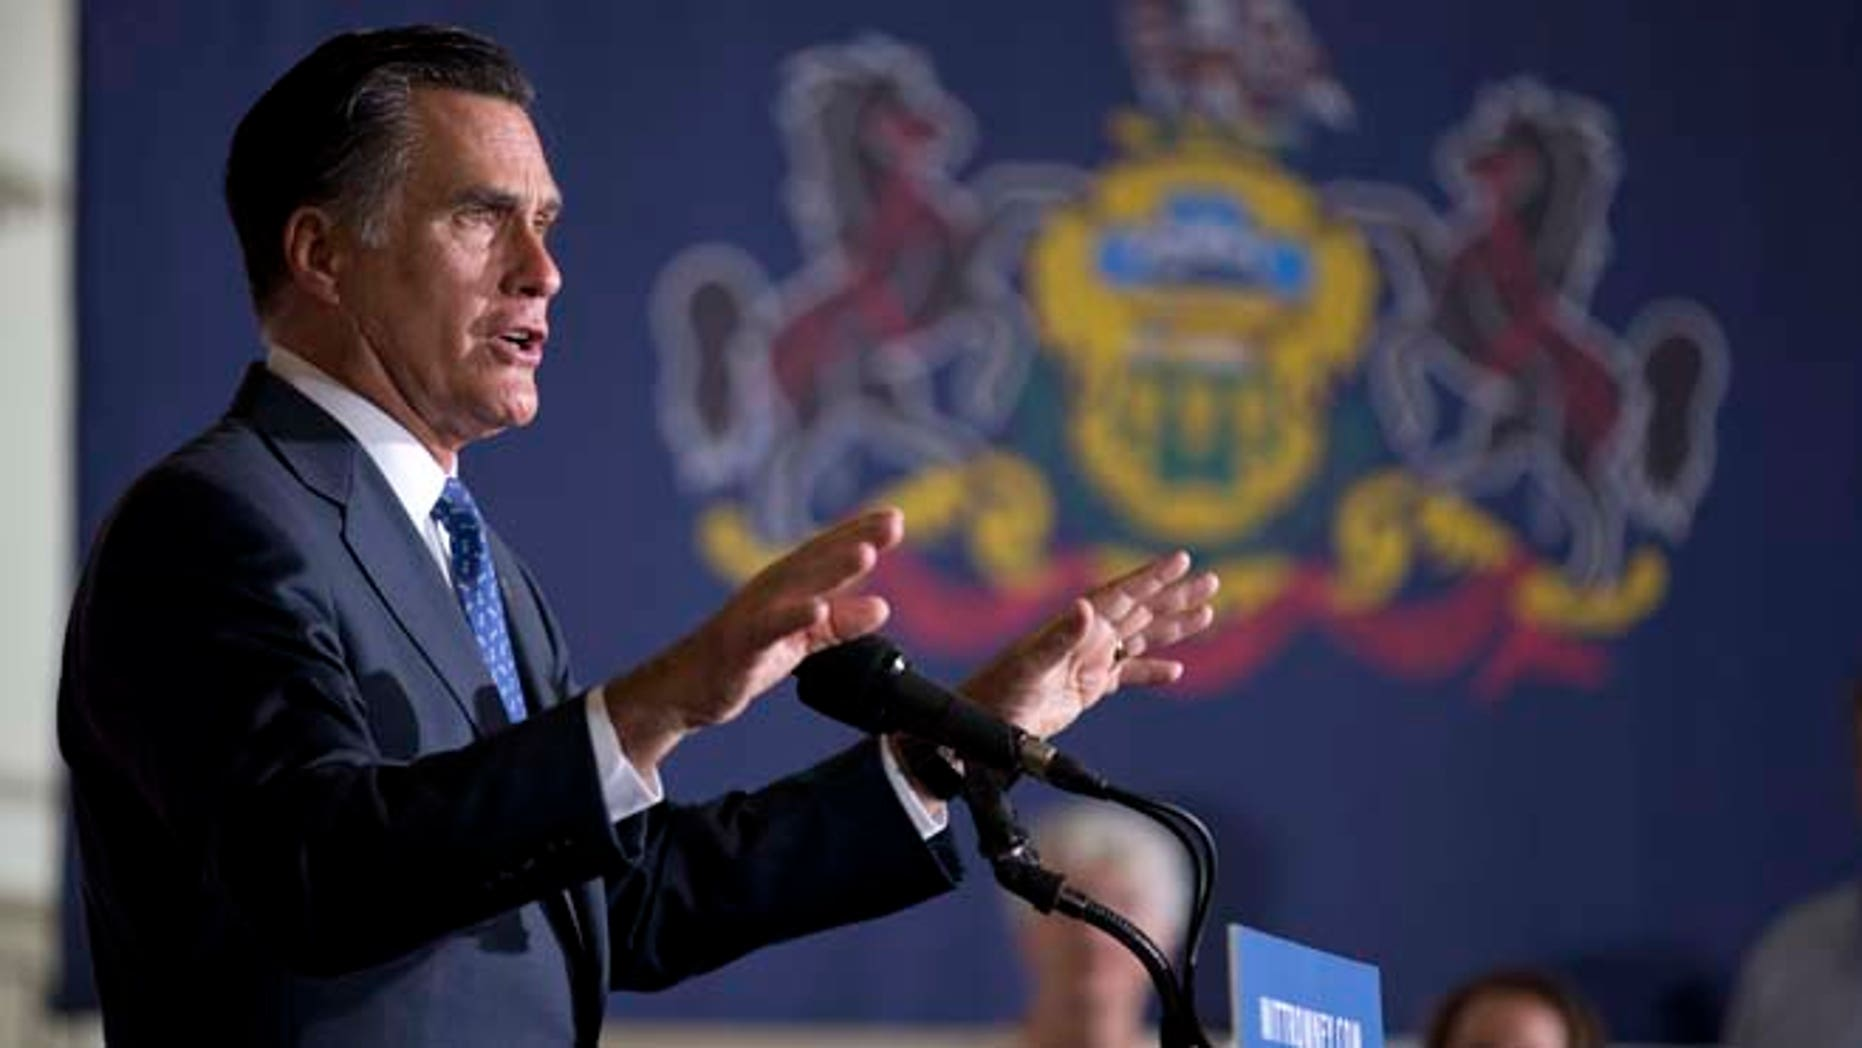 Sept. 28, 2012: Mitt Romney speaks during a rally at Valley Forge Military Academy and College.